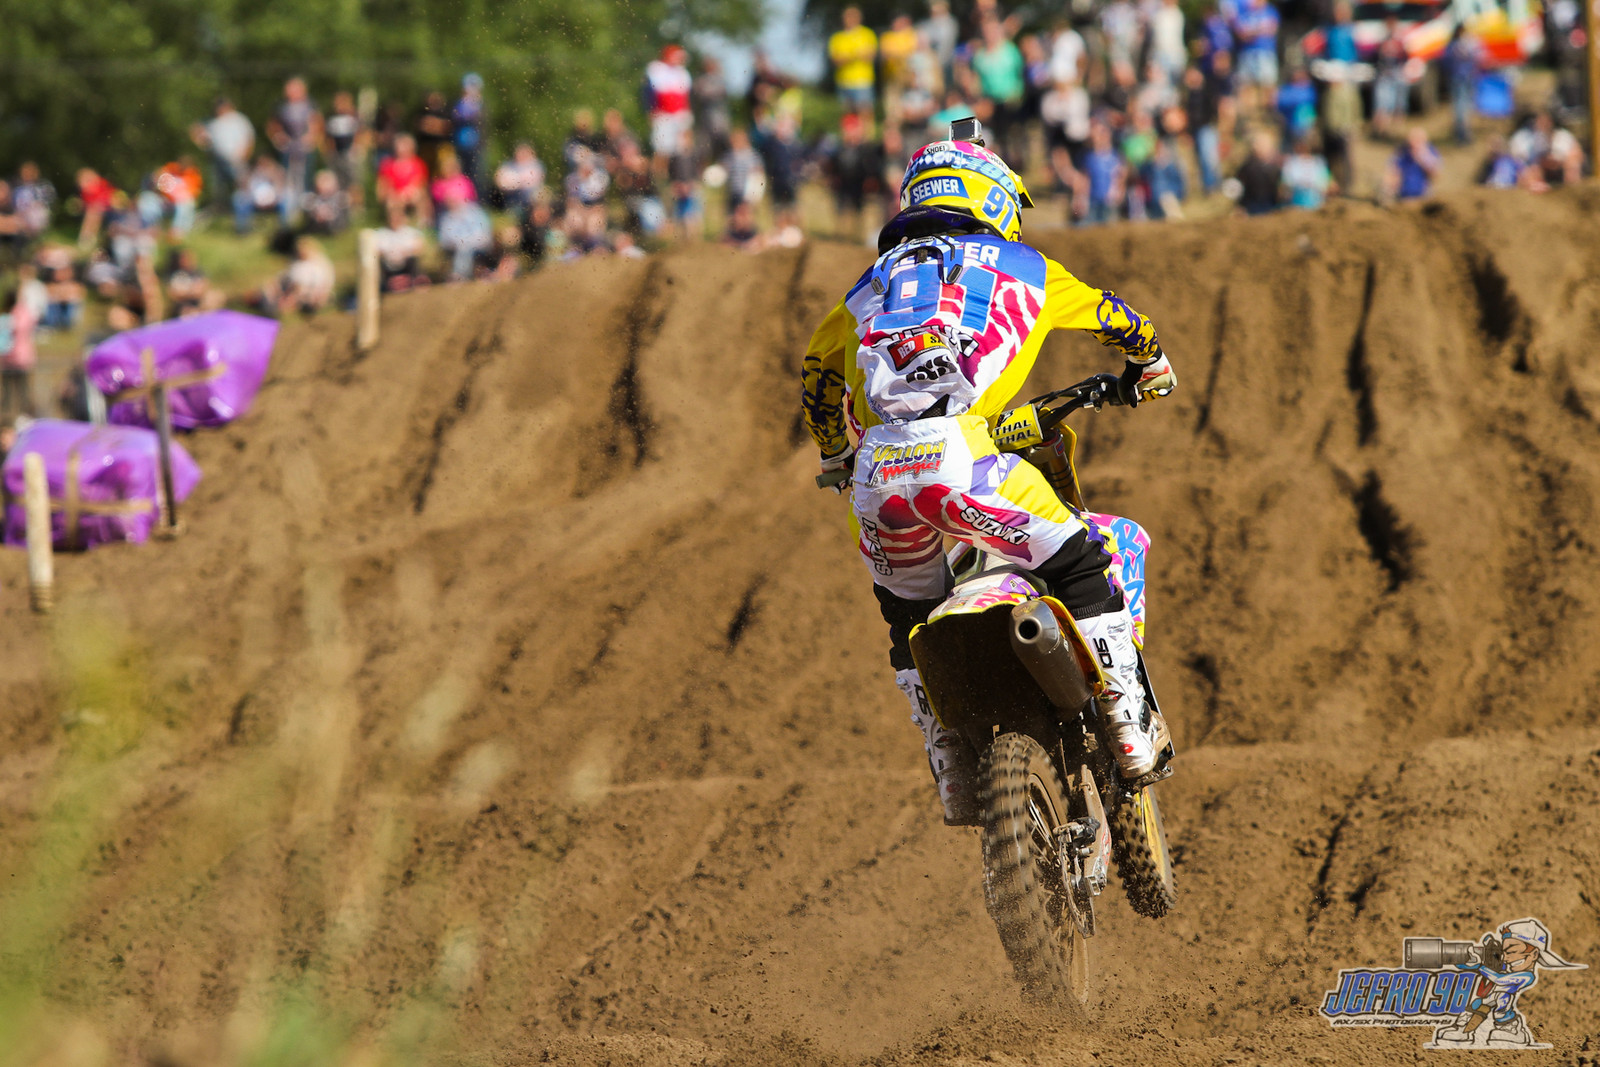 Jeremy Seewer - Photo Gallery: MXGP of Limburg - Motocross Pictures - Vital MX